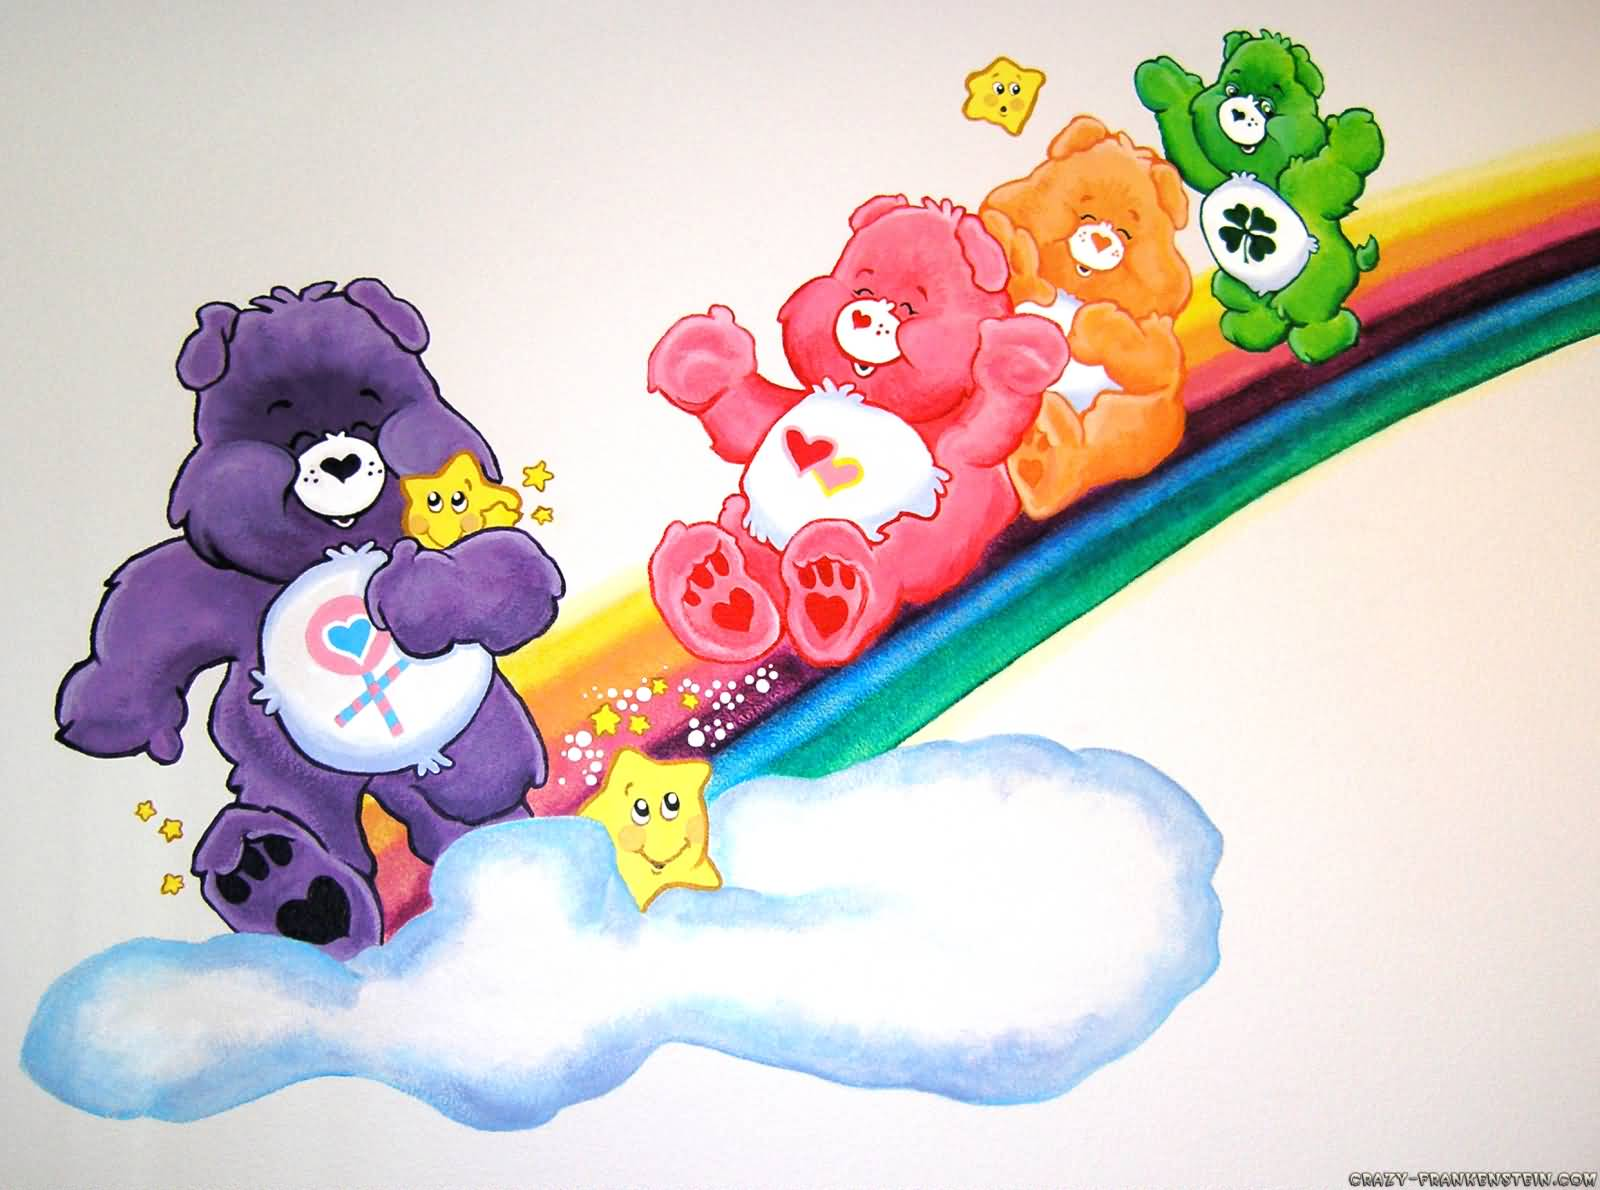 50 most beautiful care bears photos and pictures - Care bears wallpaper ...